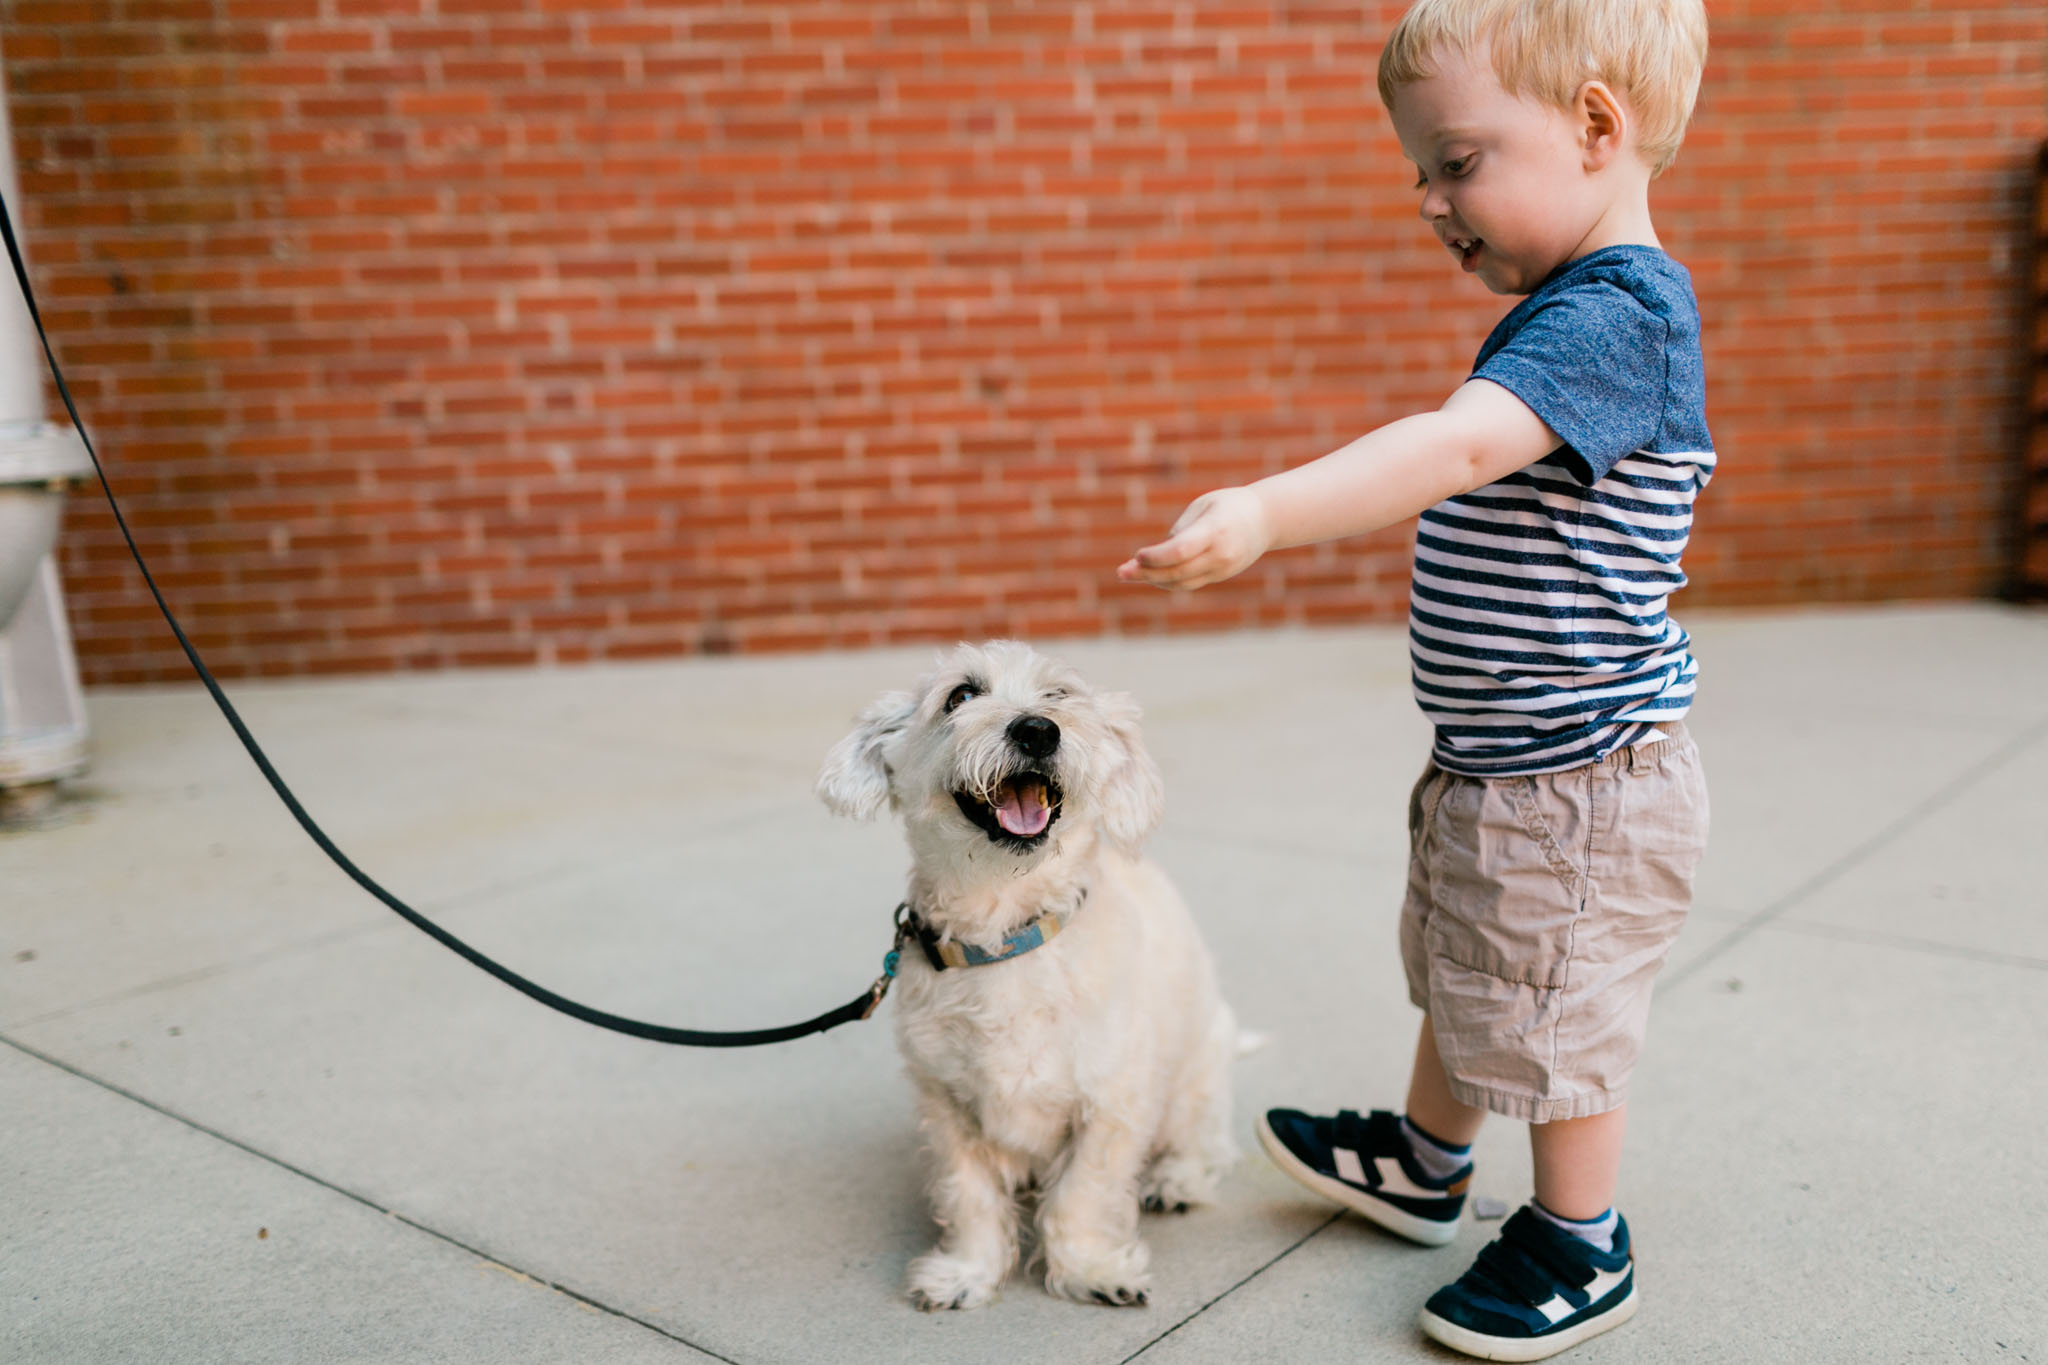 Young boy feeding dog | Durham Photographer | By G. Lin Photography